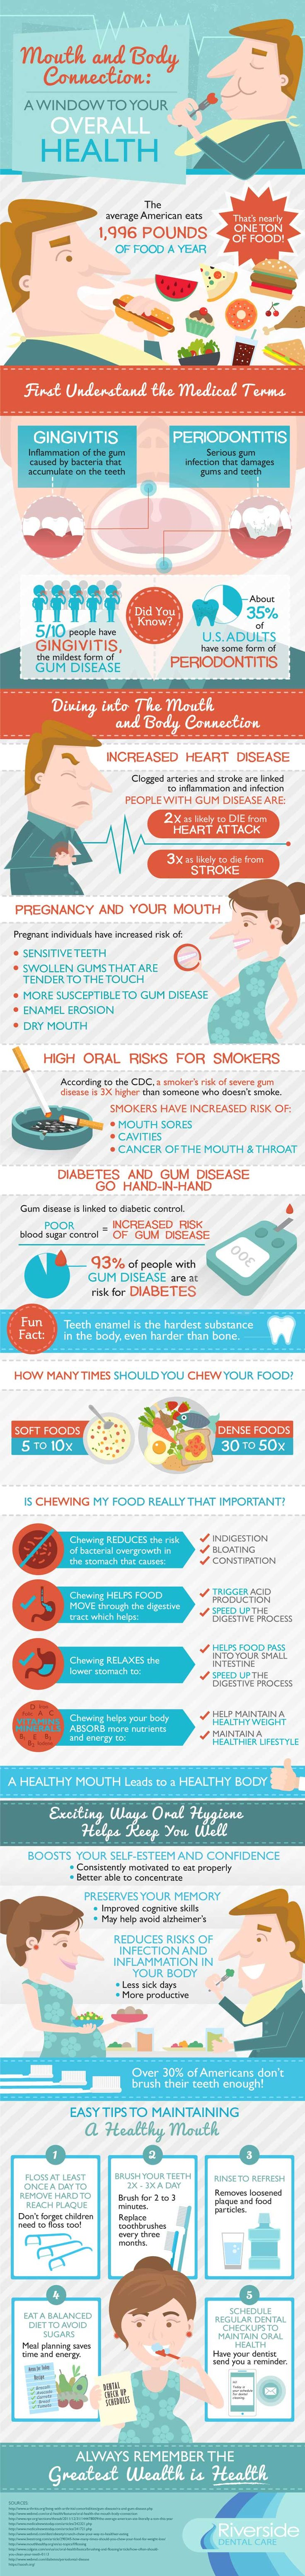 Mouth and Body Connection: A Window To Your Overall Health #Infographic #Food #Health